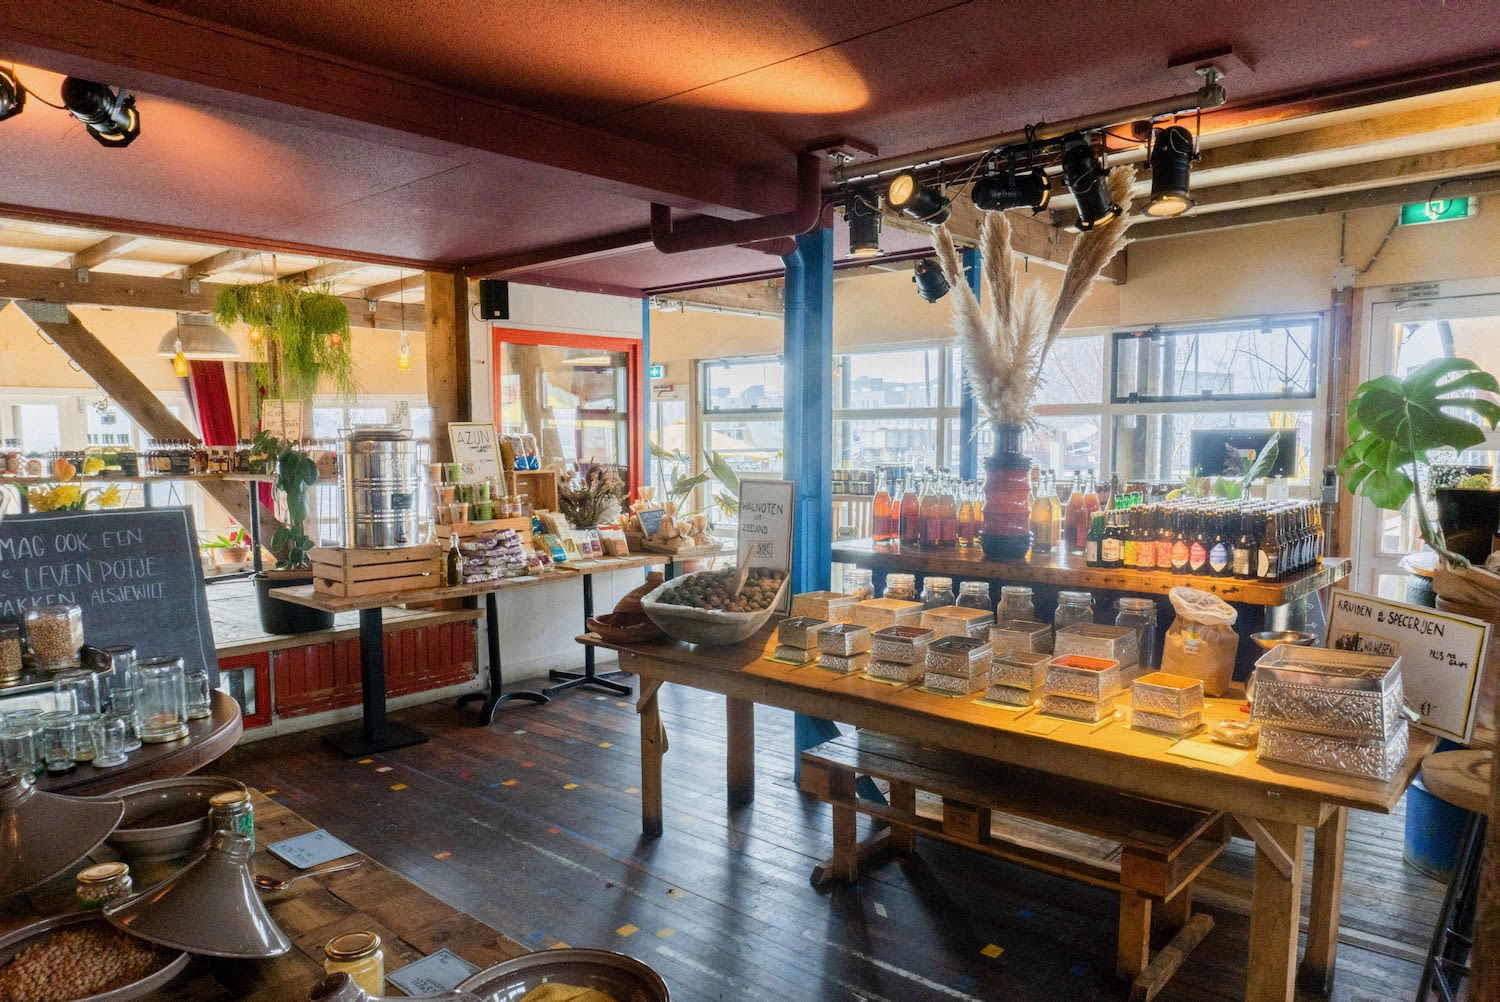 Café de Ceuvel's sustainable market and restaurant | Table Sage's Spring Favorites in Amsterdam Noord